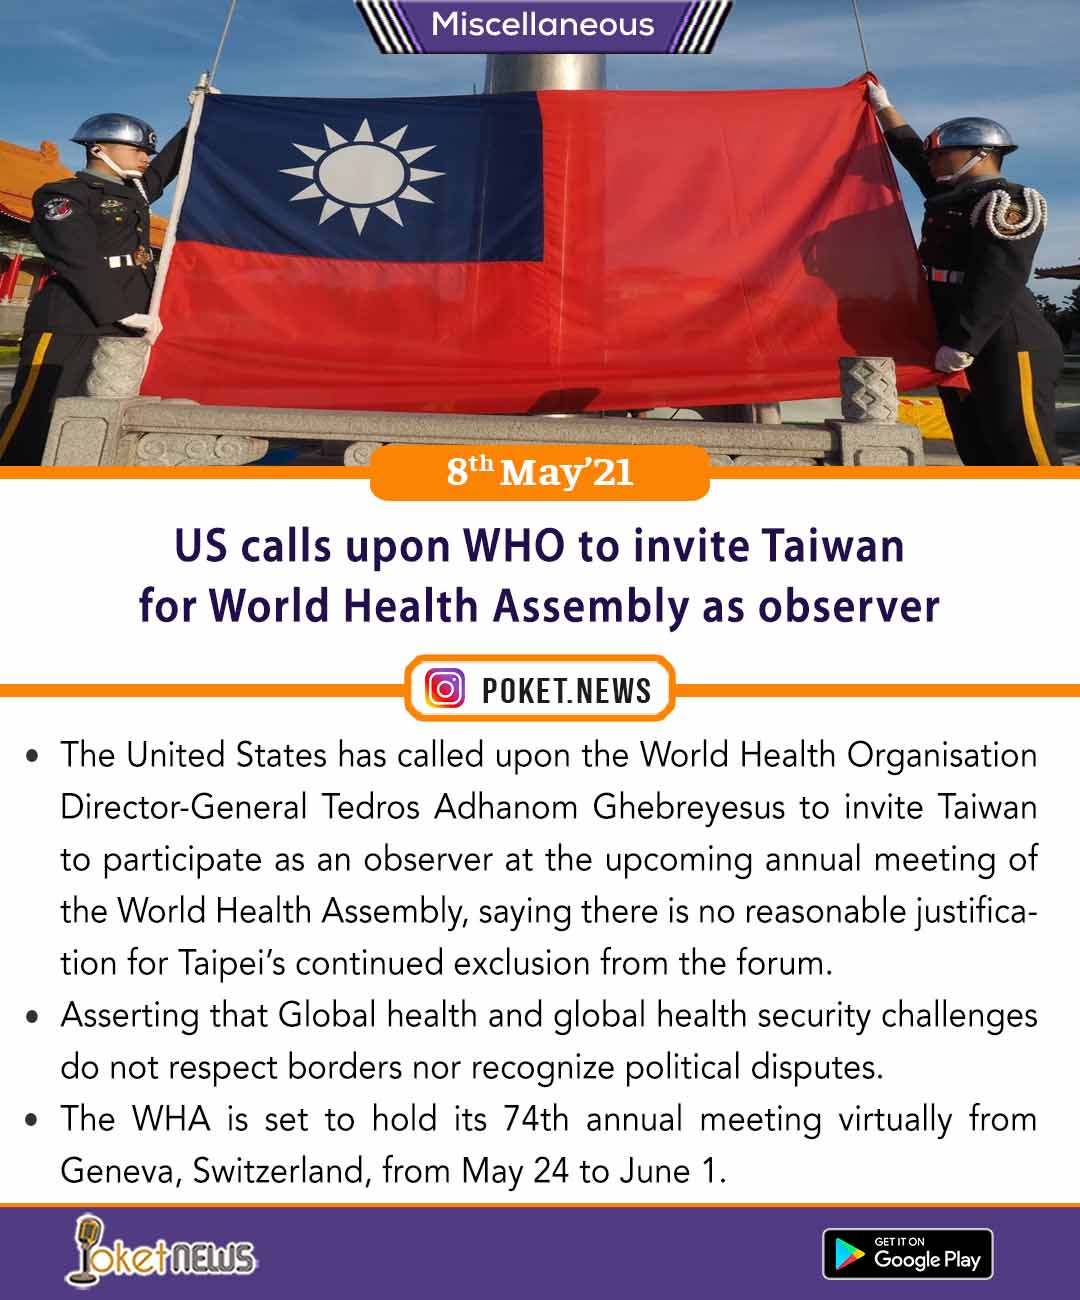 US calls upon WHO to invite Taiwan for World Health Assembly as observer